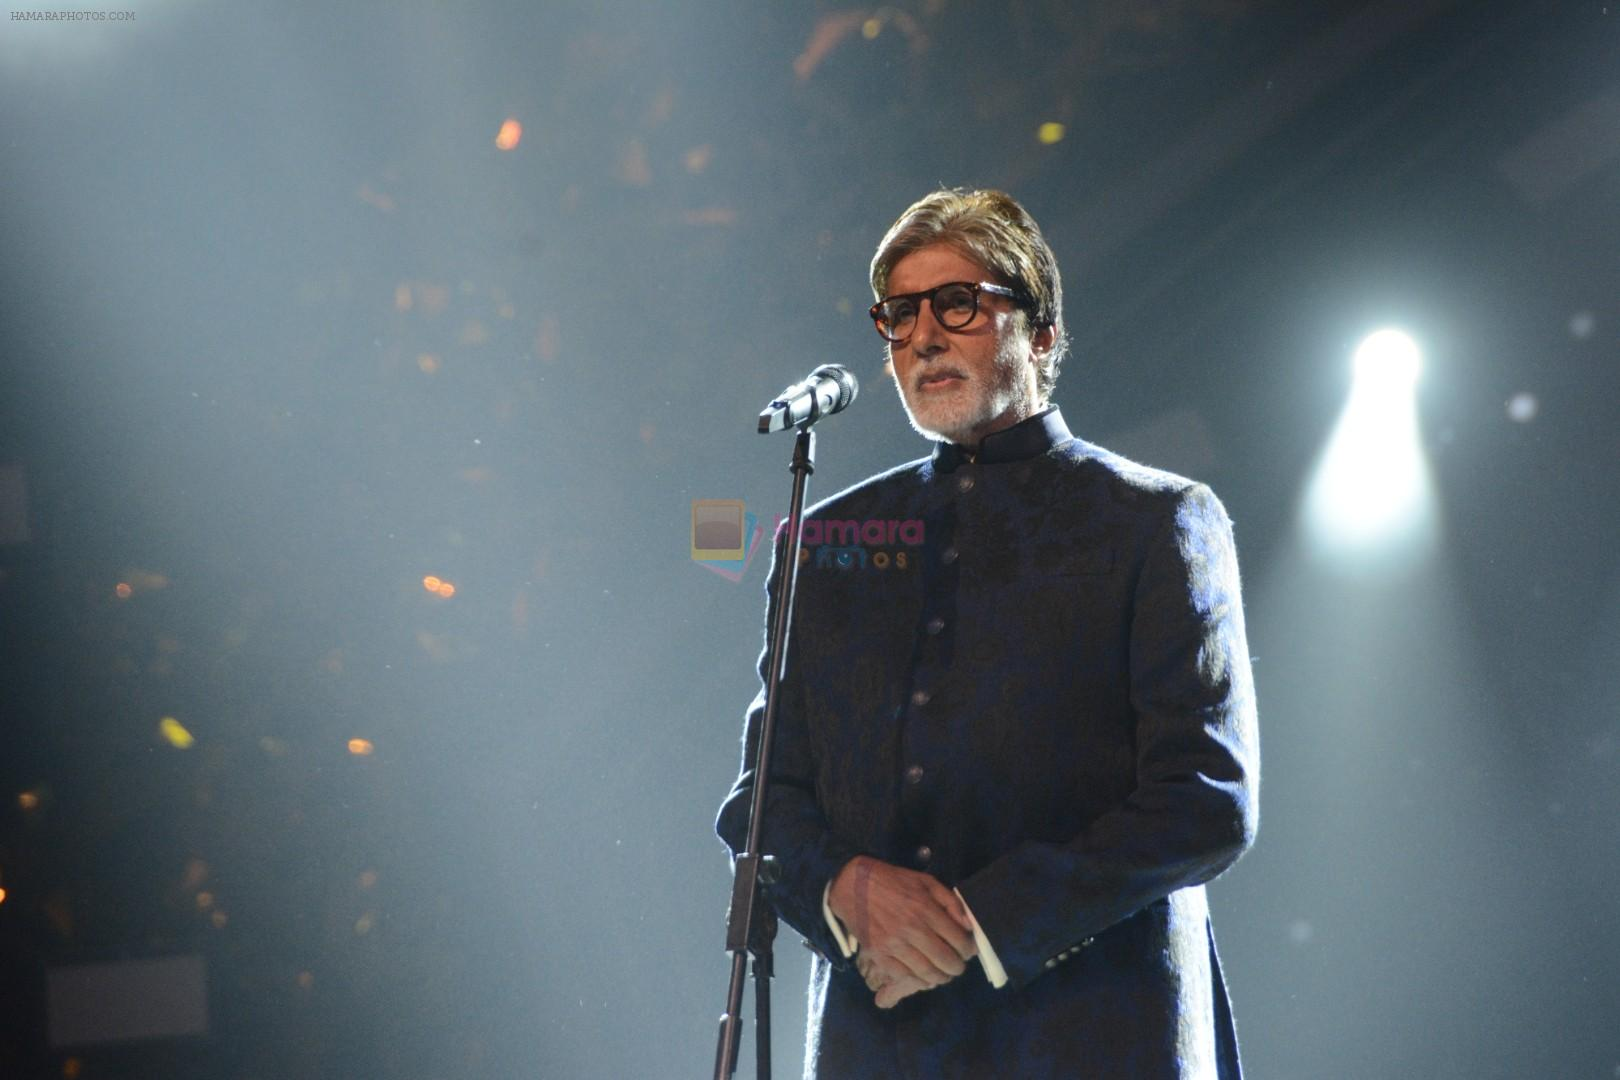 Amitabh Bachchan at Umang police festival in bkc on 27th Jan 2019